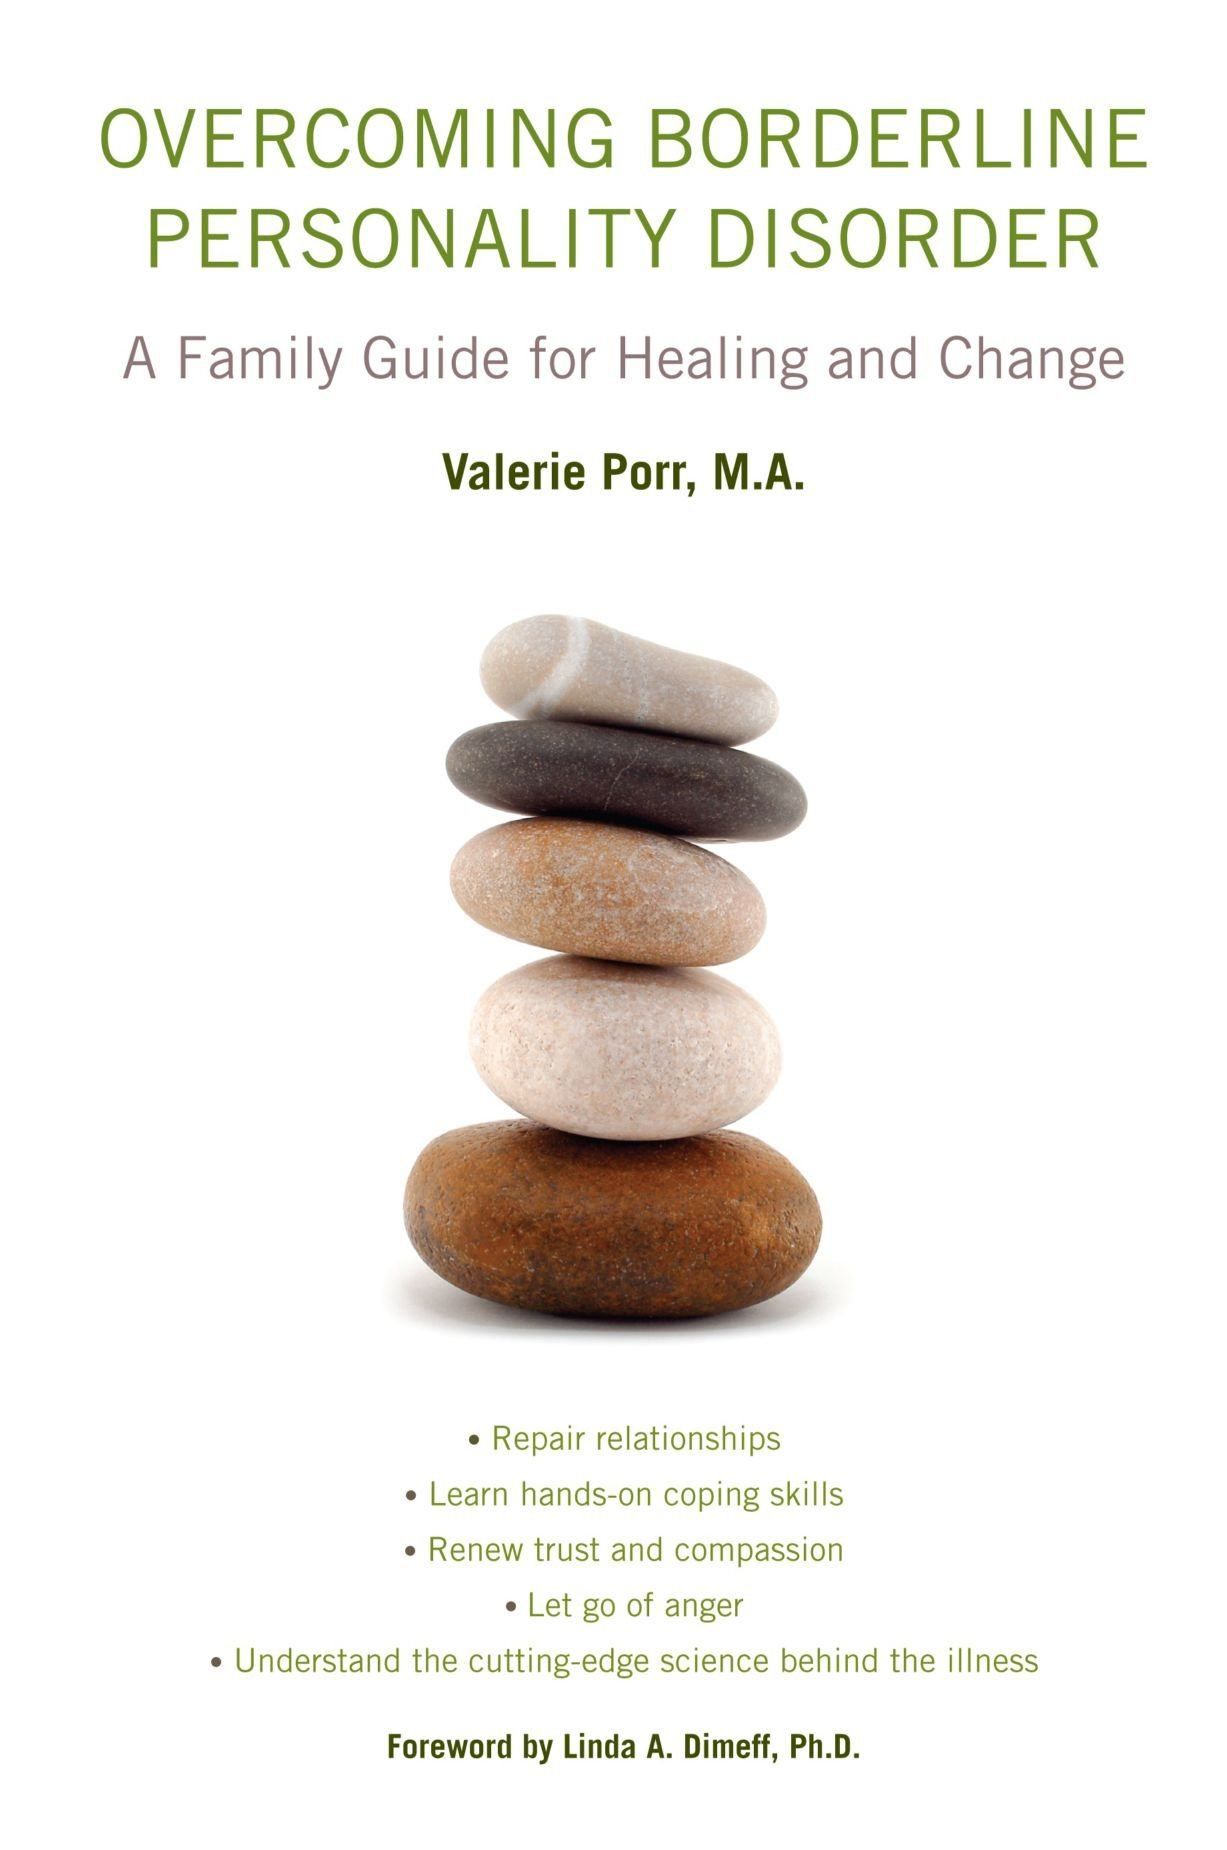 Overcoming borderline personality disorder a family guide for overcoming borderline personality disorder a family guide for healing and change valerie porr 9780195379587 books amazon fandeluxe Image collections